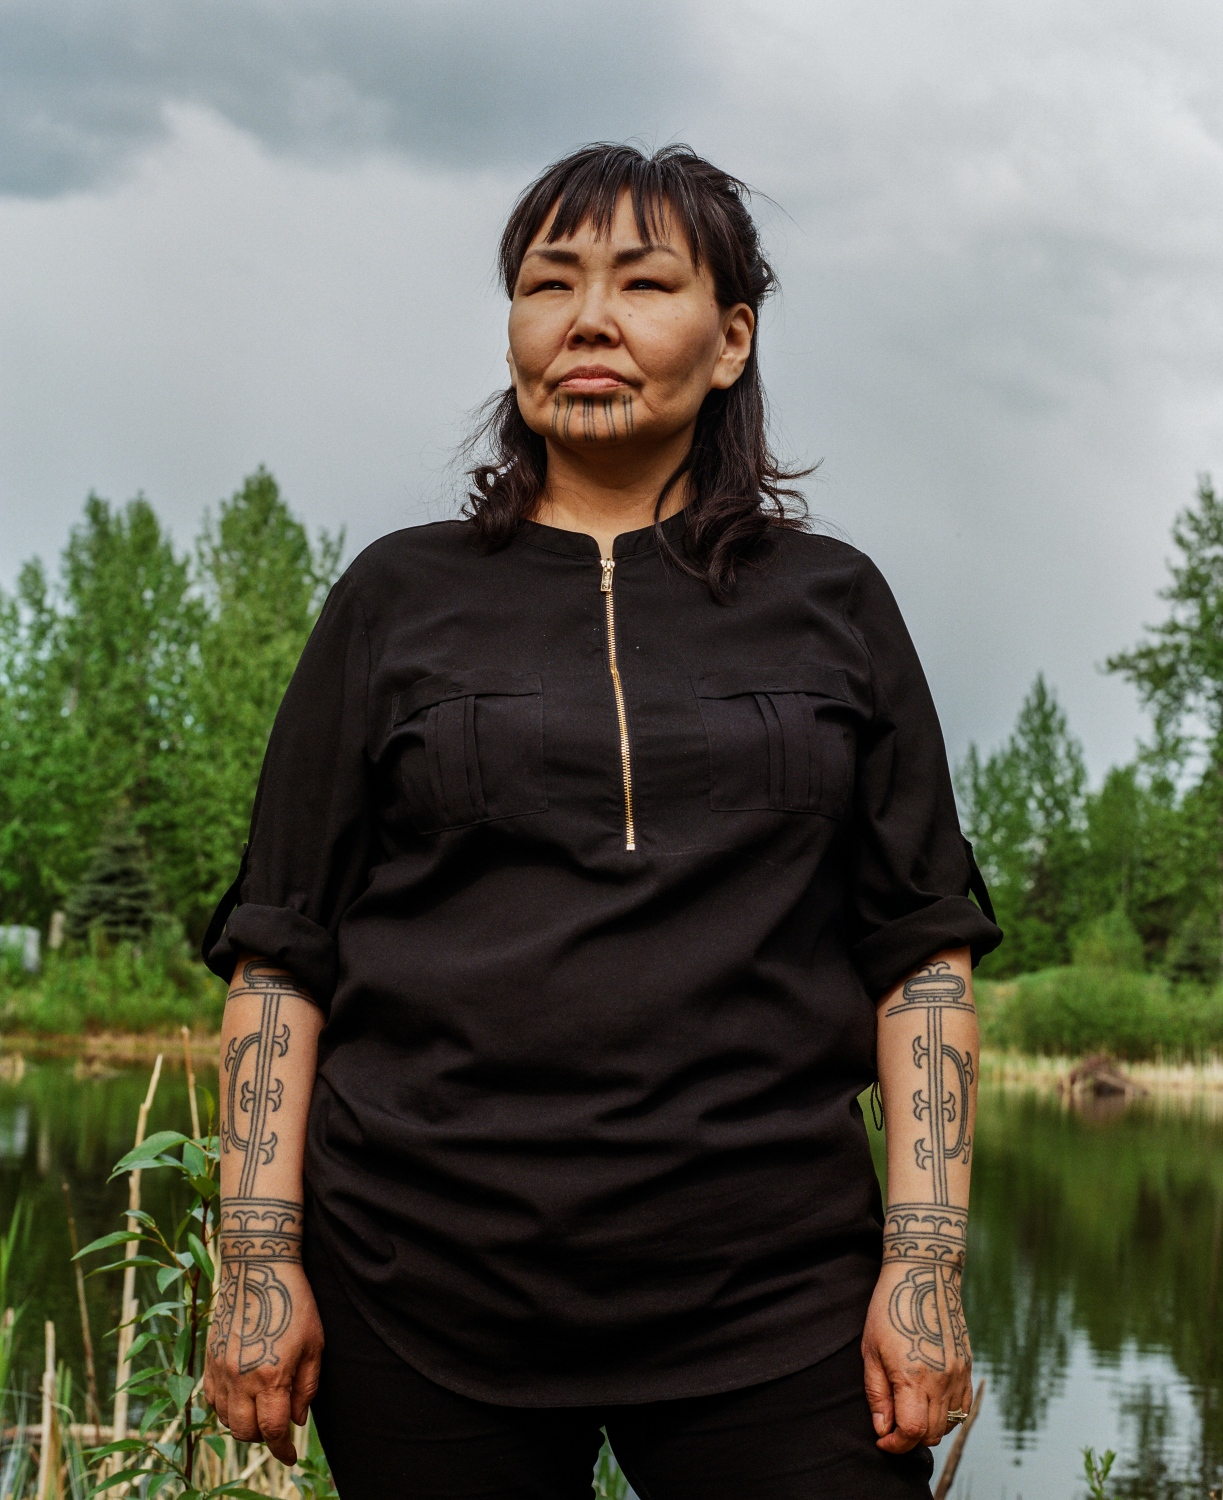 "Several women who have received their traditional tattoos have cited Yaari Walker as a woman who paved the way for them. Walker, originally from Savoonga on Saint Lawrence Island, had her chin tattooed at a tattoo parlor in Anchorage over 10 years ago. ""My mother's mother had both cheeks, her chin—she also had 11 stripes, that's why I chose to do 11, because of my grandma. She had two lines going down her nose and her hands and her arms. So, I knew that eventually that I wanted to do tattoos,"" Walker says.  When women praise her for having paved the way for them, she says it just makes her think of her ancestors. ""I think about the ancestors. This idea came from them. It was their invention. It wasn't me. This tradition didn't come from me. So the ancestors are who I think about when people say that,"" she says. But she recognizes that now this movement has an evolved significance as a revitalization. ""This is a part of decolonization. This generation is the one putting its foot down and saying hey, we want our traditions back. What was once shamed is now coming back to life very beautifully and very strong."""